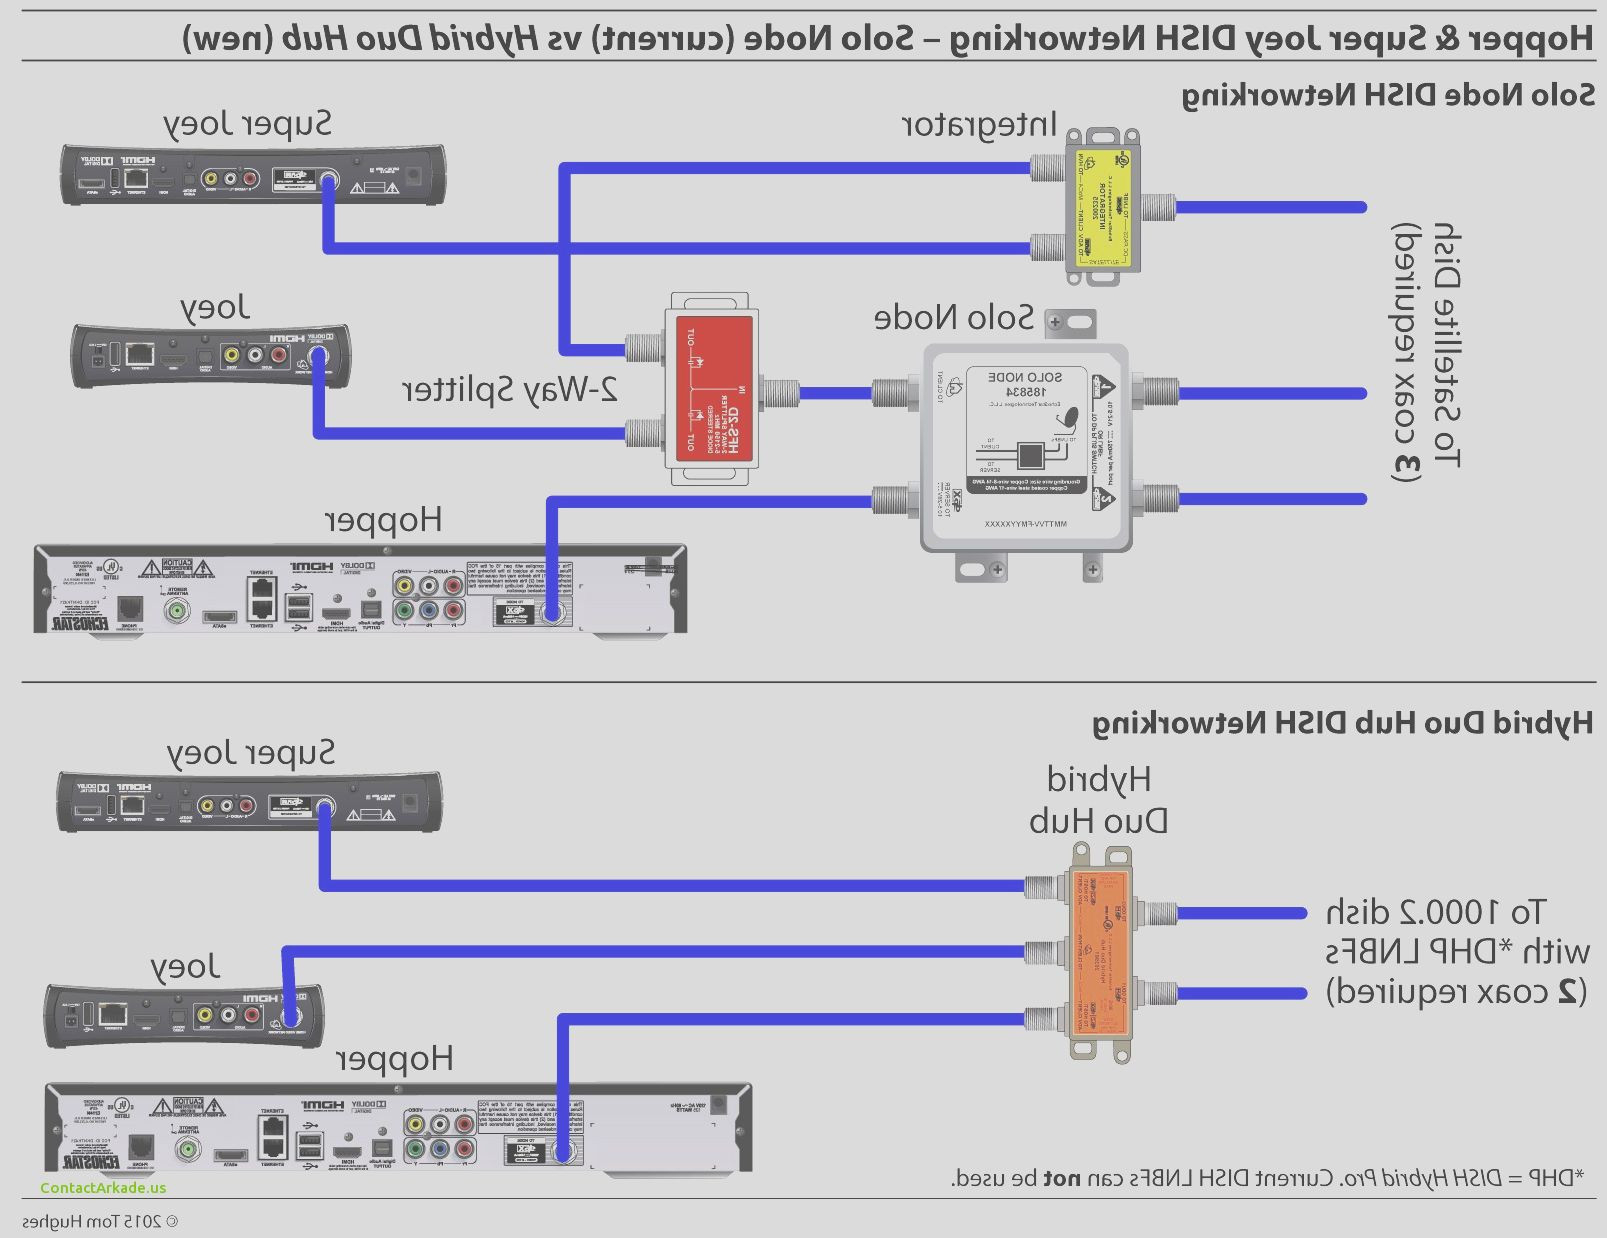 dish network wiring diagram Collection-Wiring Diagram for Cat5 Network Cable New Rv Cable and Satellite Wiring Diagram Elegant Awesome Dish 12-g